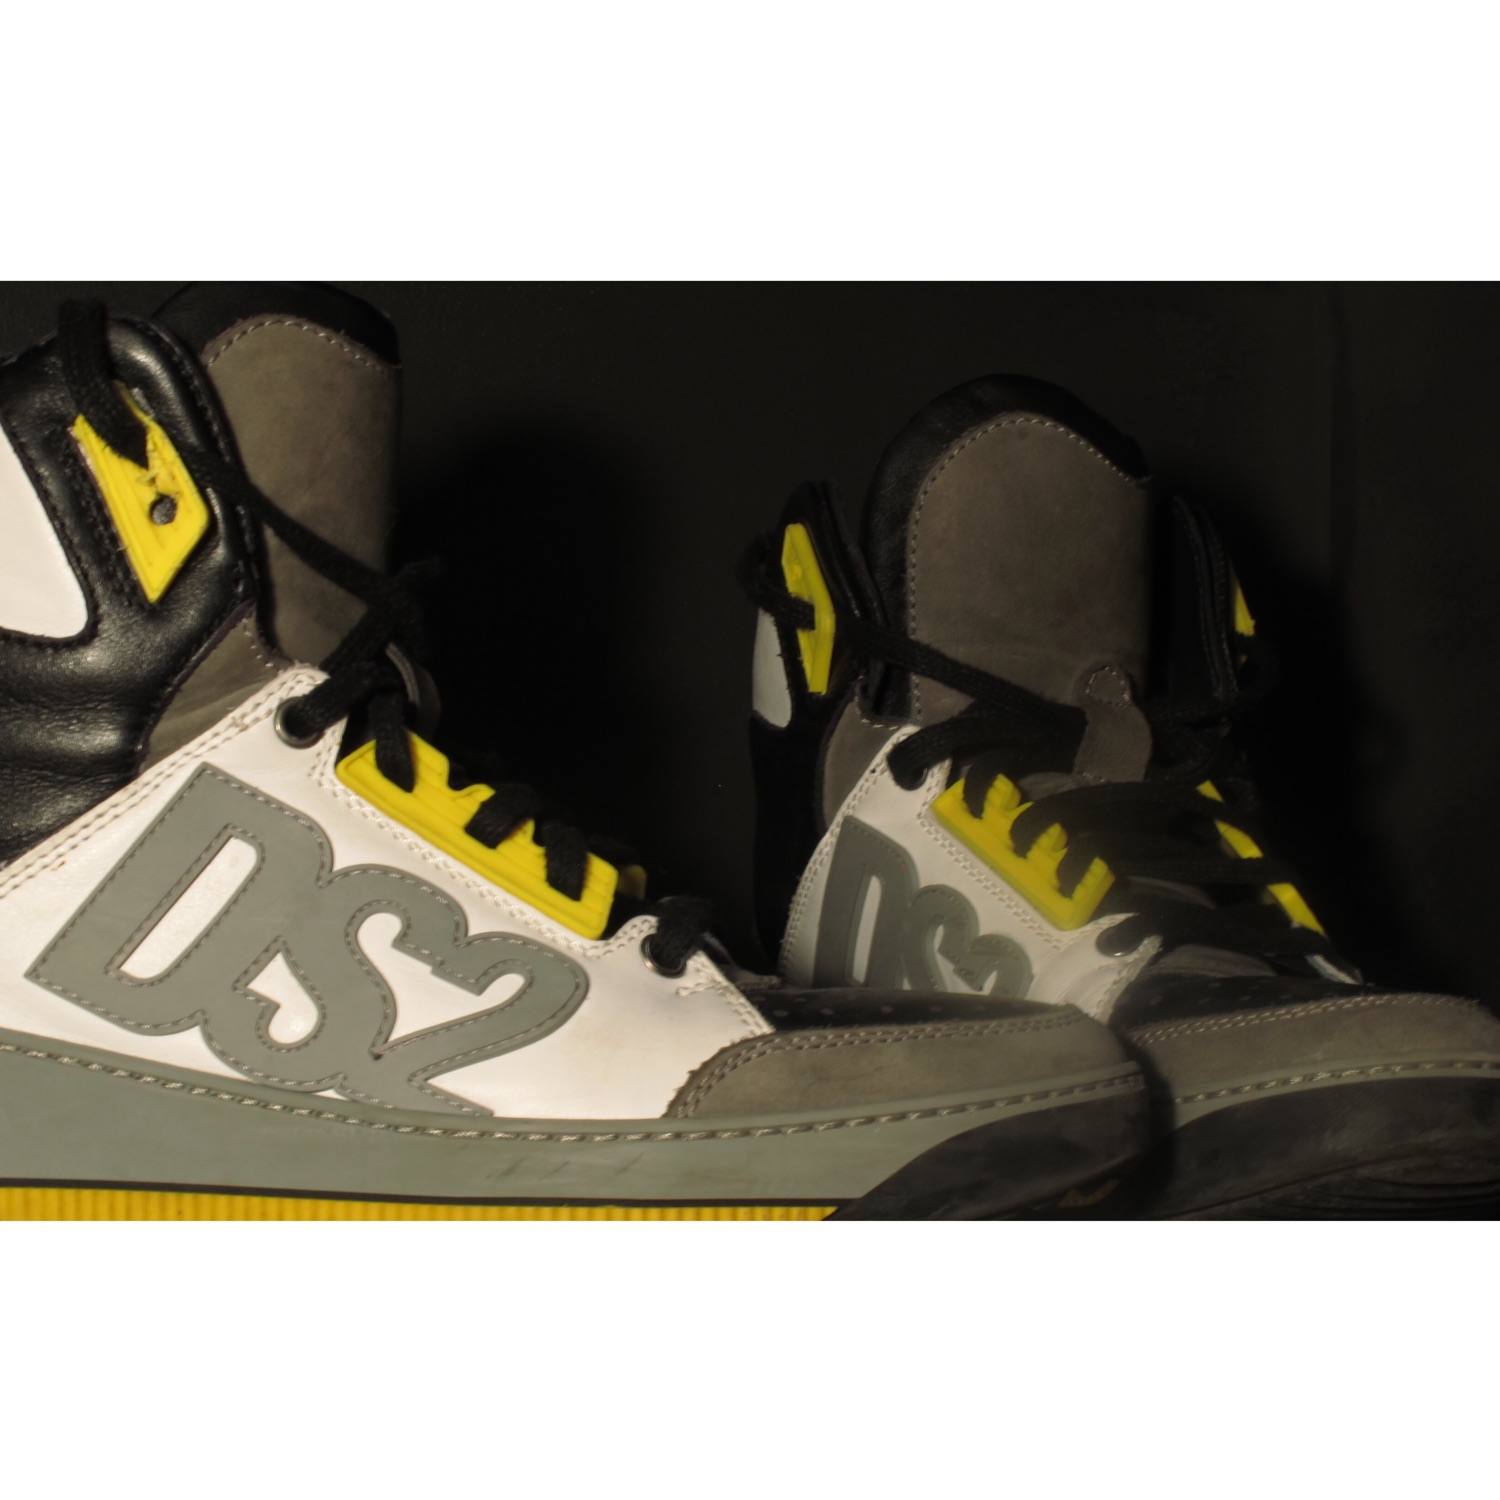 Dsquared2 High Top Sneakers